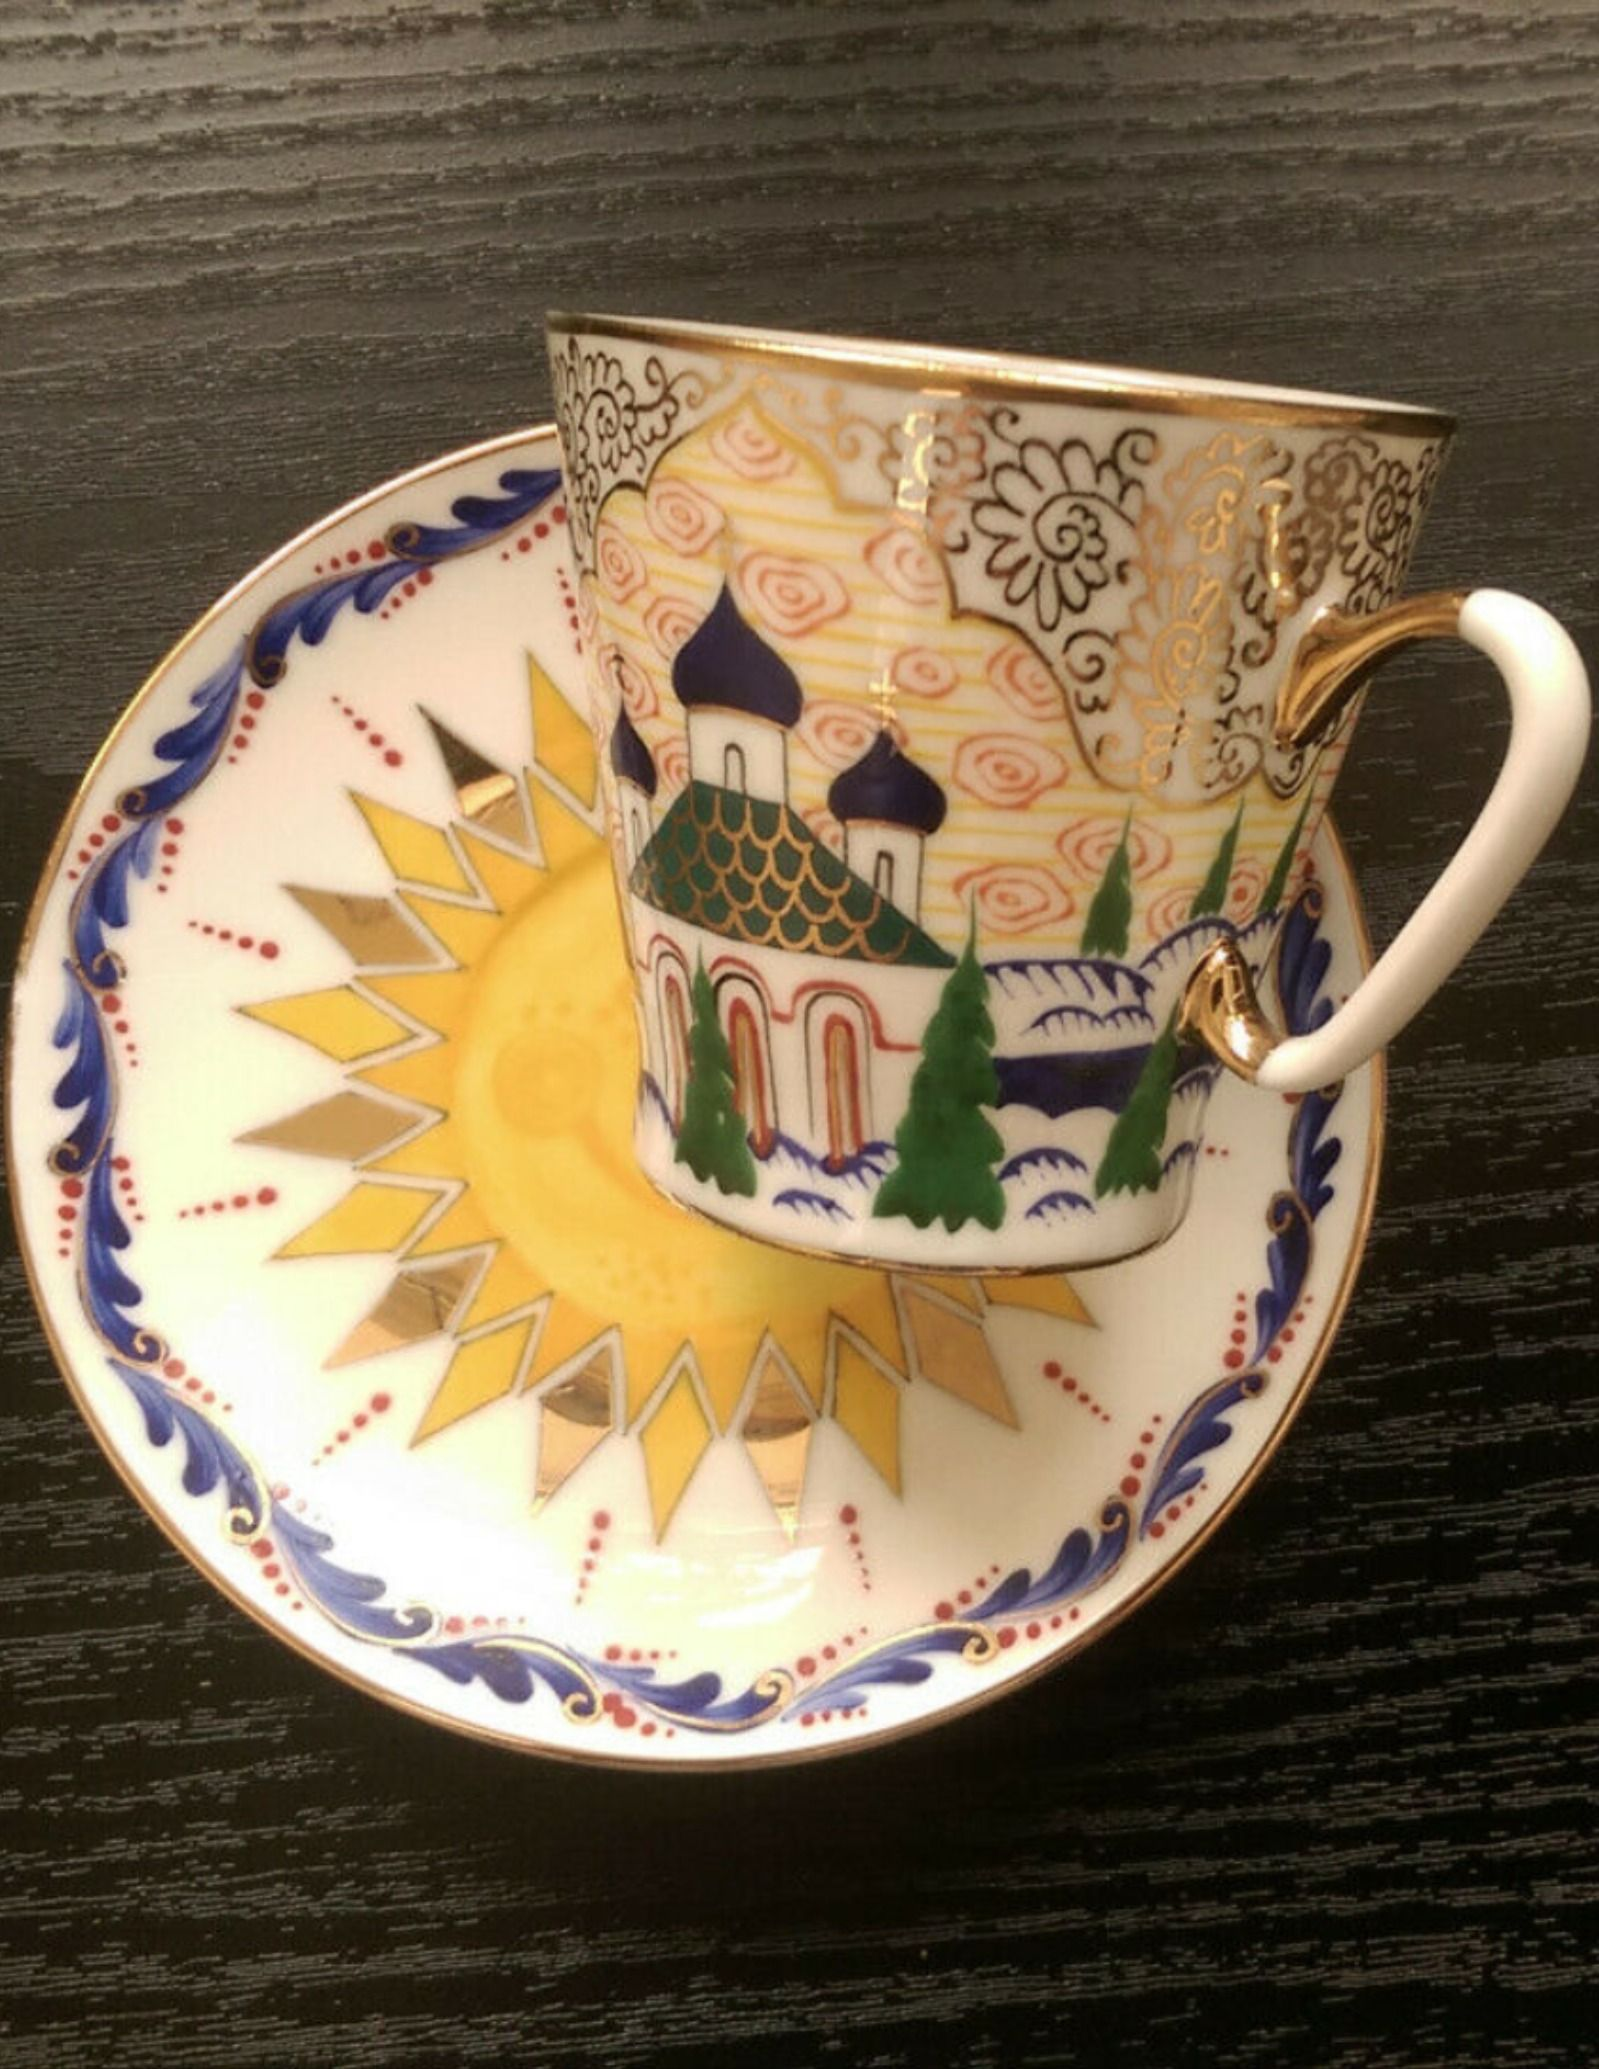 Unique Collectable Imperial Lomonosov Cup And Saucer Hand Painted Real Gold In 2020 Tea Cups Vintage Cup Unique Collectibles